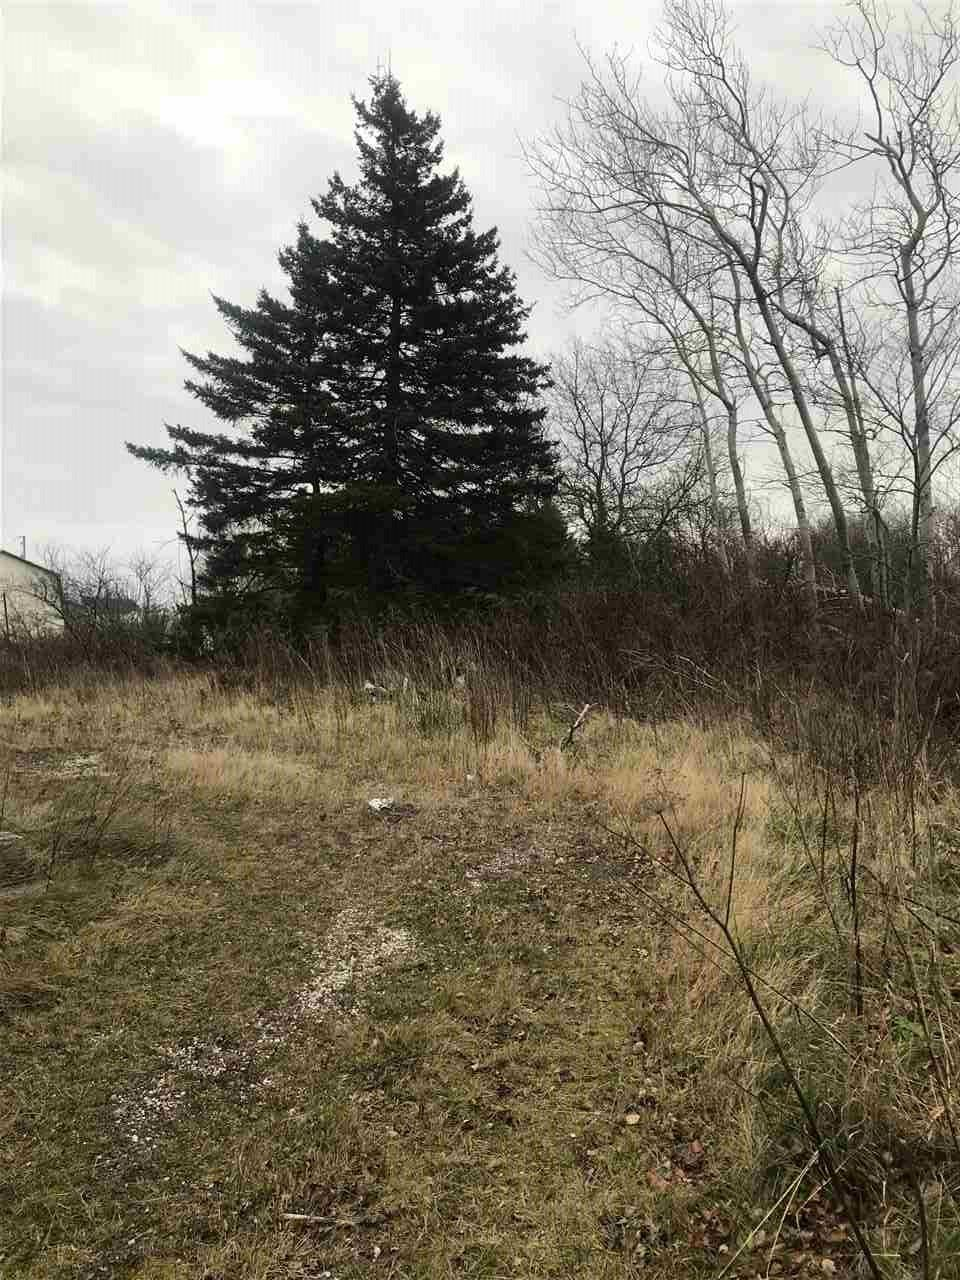 Main Photo: 249 Brookside Street in Glace Bay: 203-Glace Bay Vacant Land for sale (Cape Breton)  : MLS®# 202024754